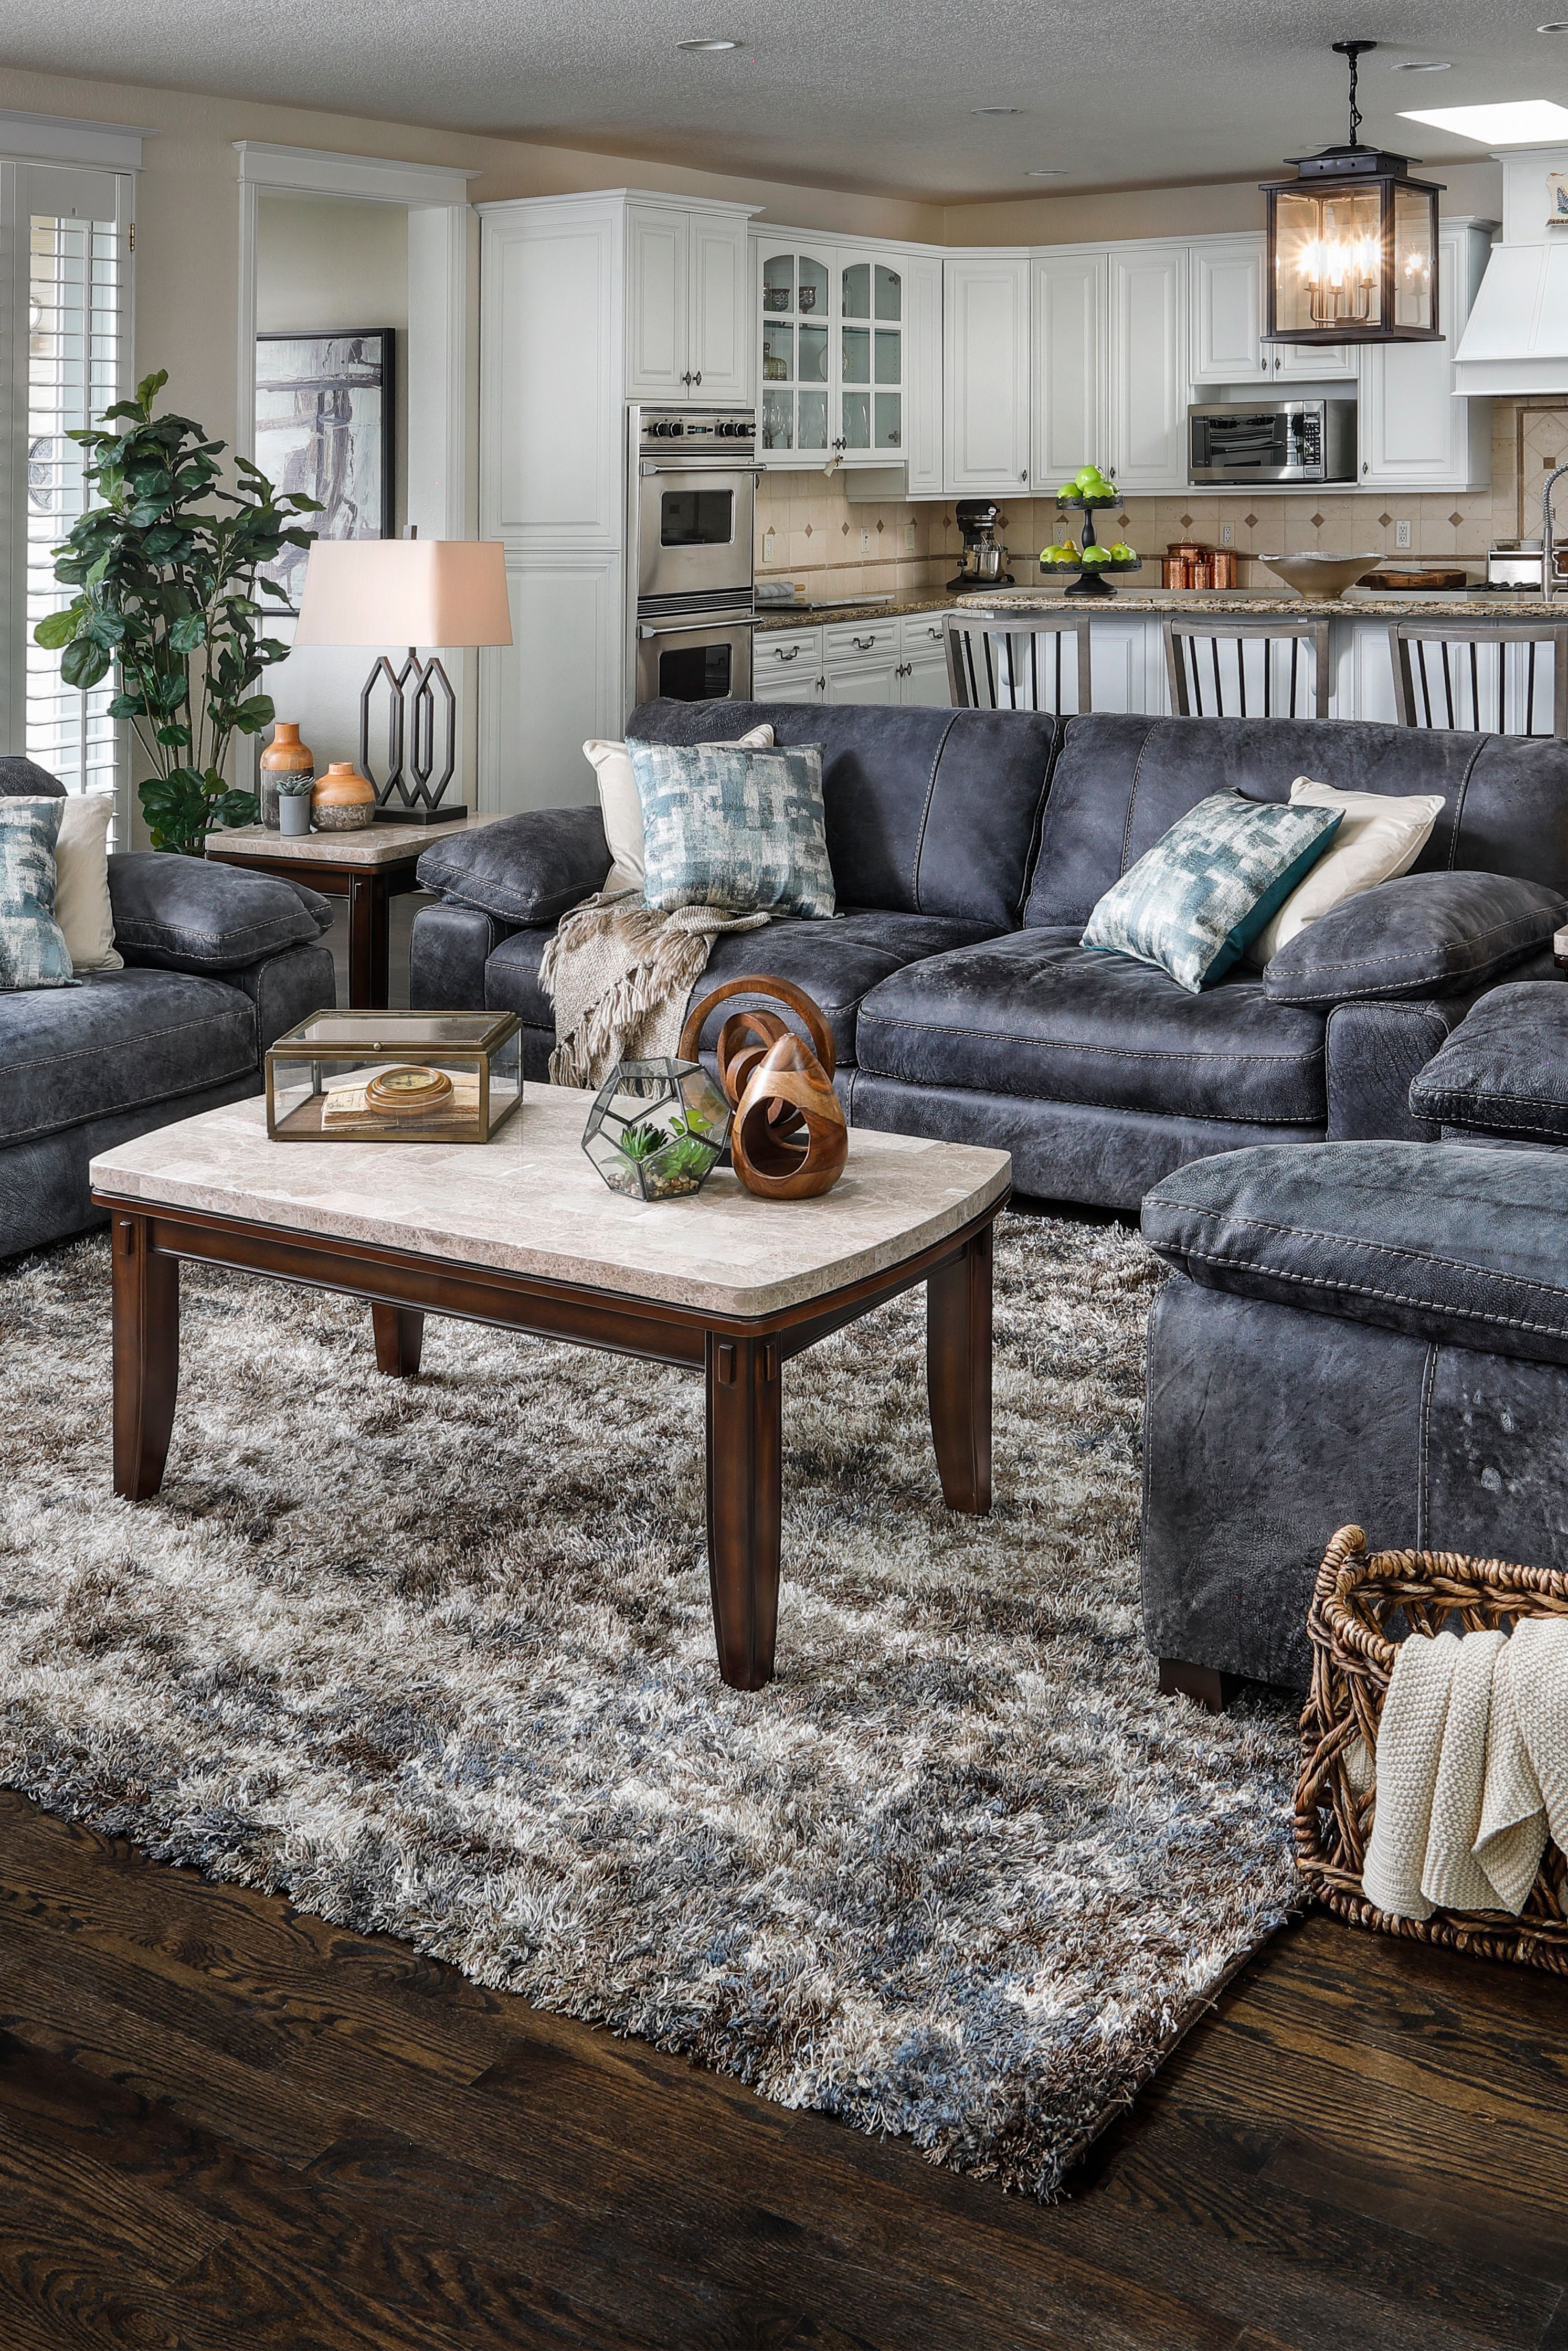 Grand Outback Leather Sofa Furniture Row In 2020 Leather Sofa Furniture Rowe Furniture Deep Seating